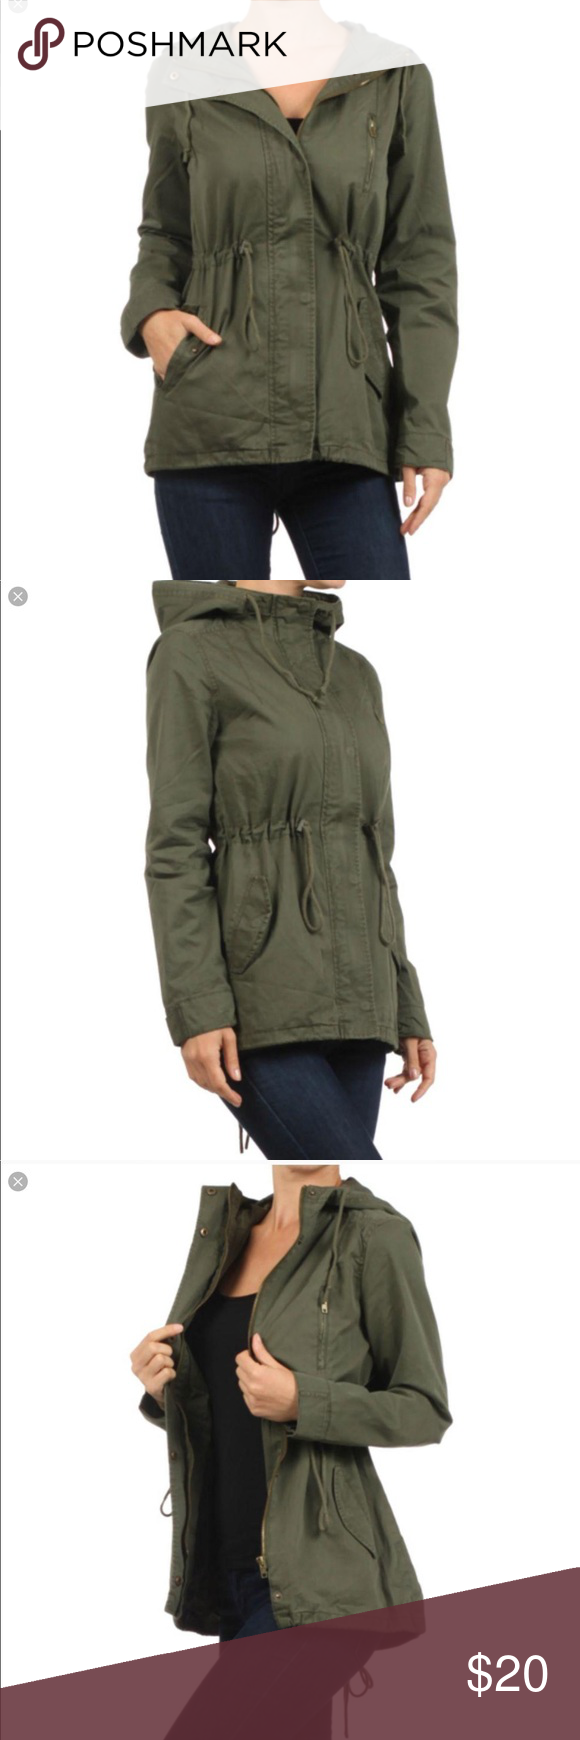 Ambiance Army Green Jacket Army Green Light Weight Jacket Adorable For An Addition To Any Outfit Ambiance Jackets Army Green Jacket Clothes Design Fashion [ 1740 x 580 Pixel ]